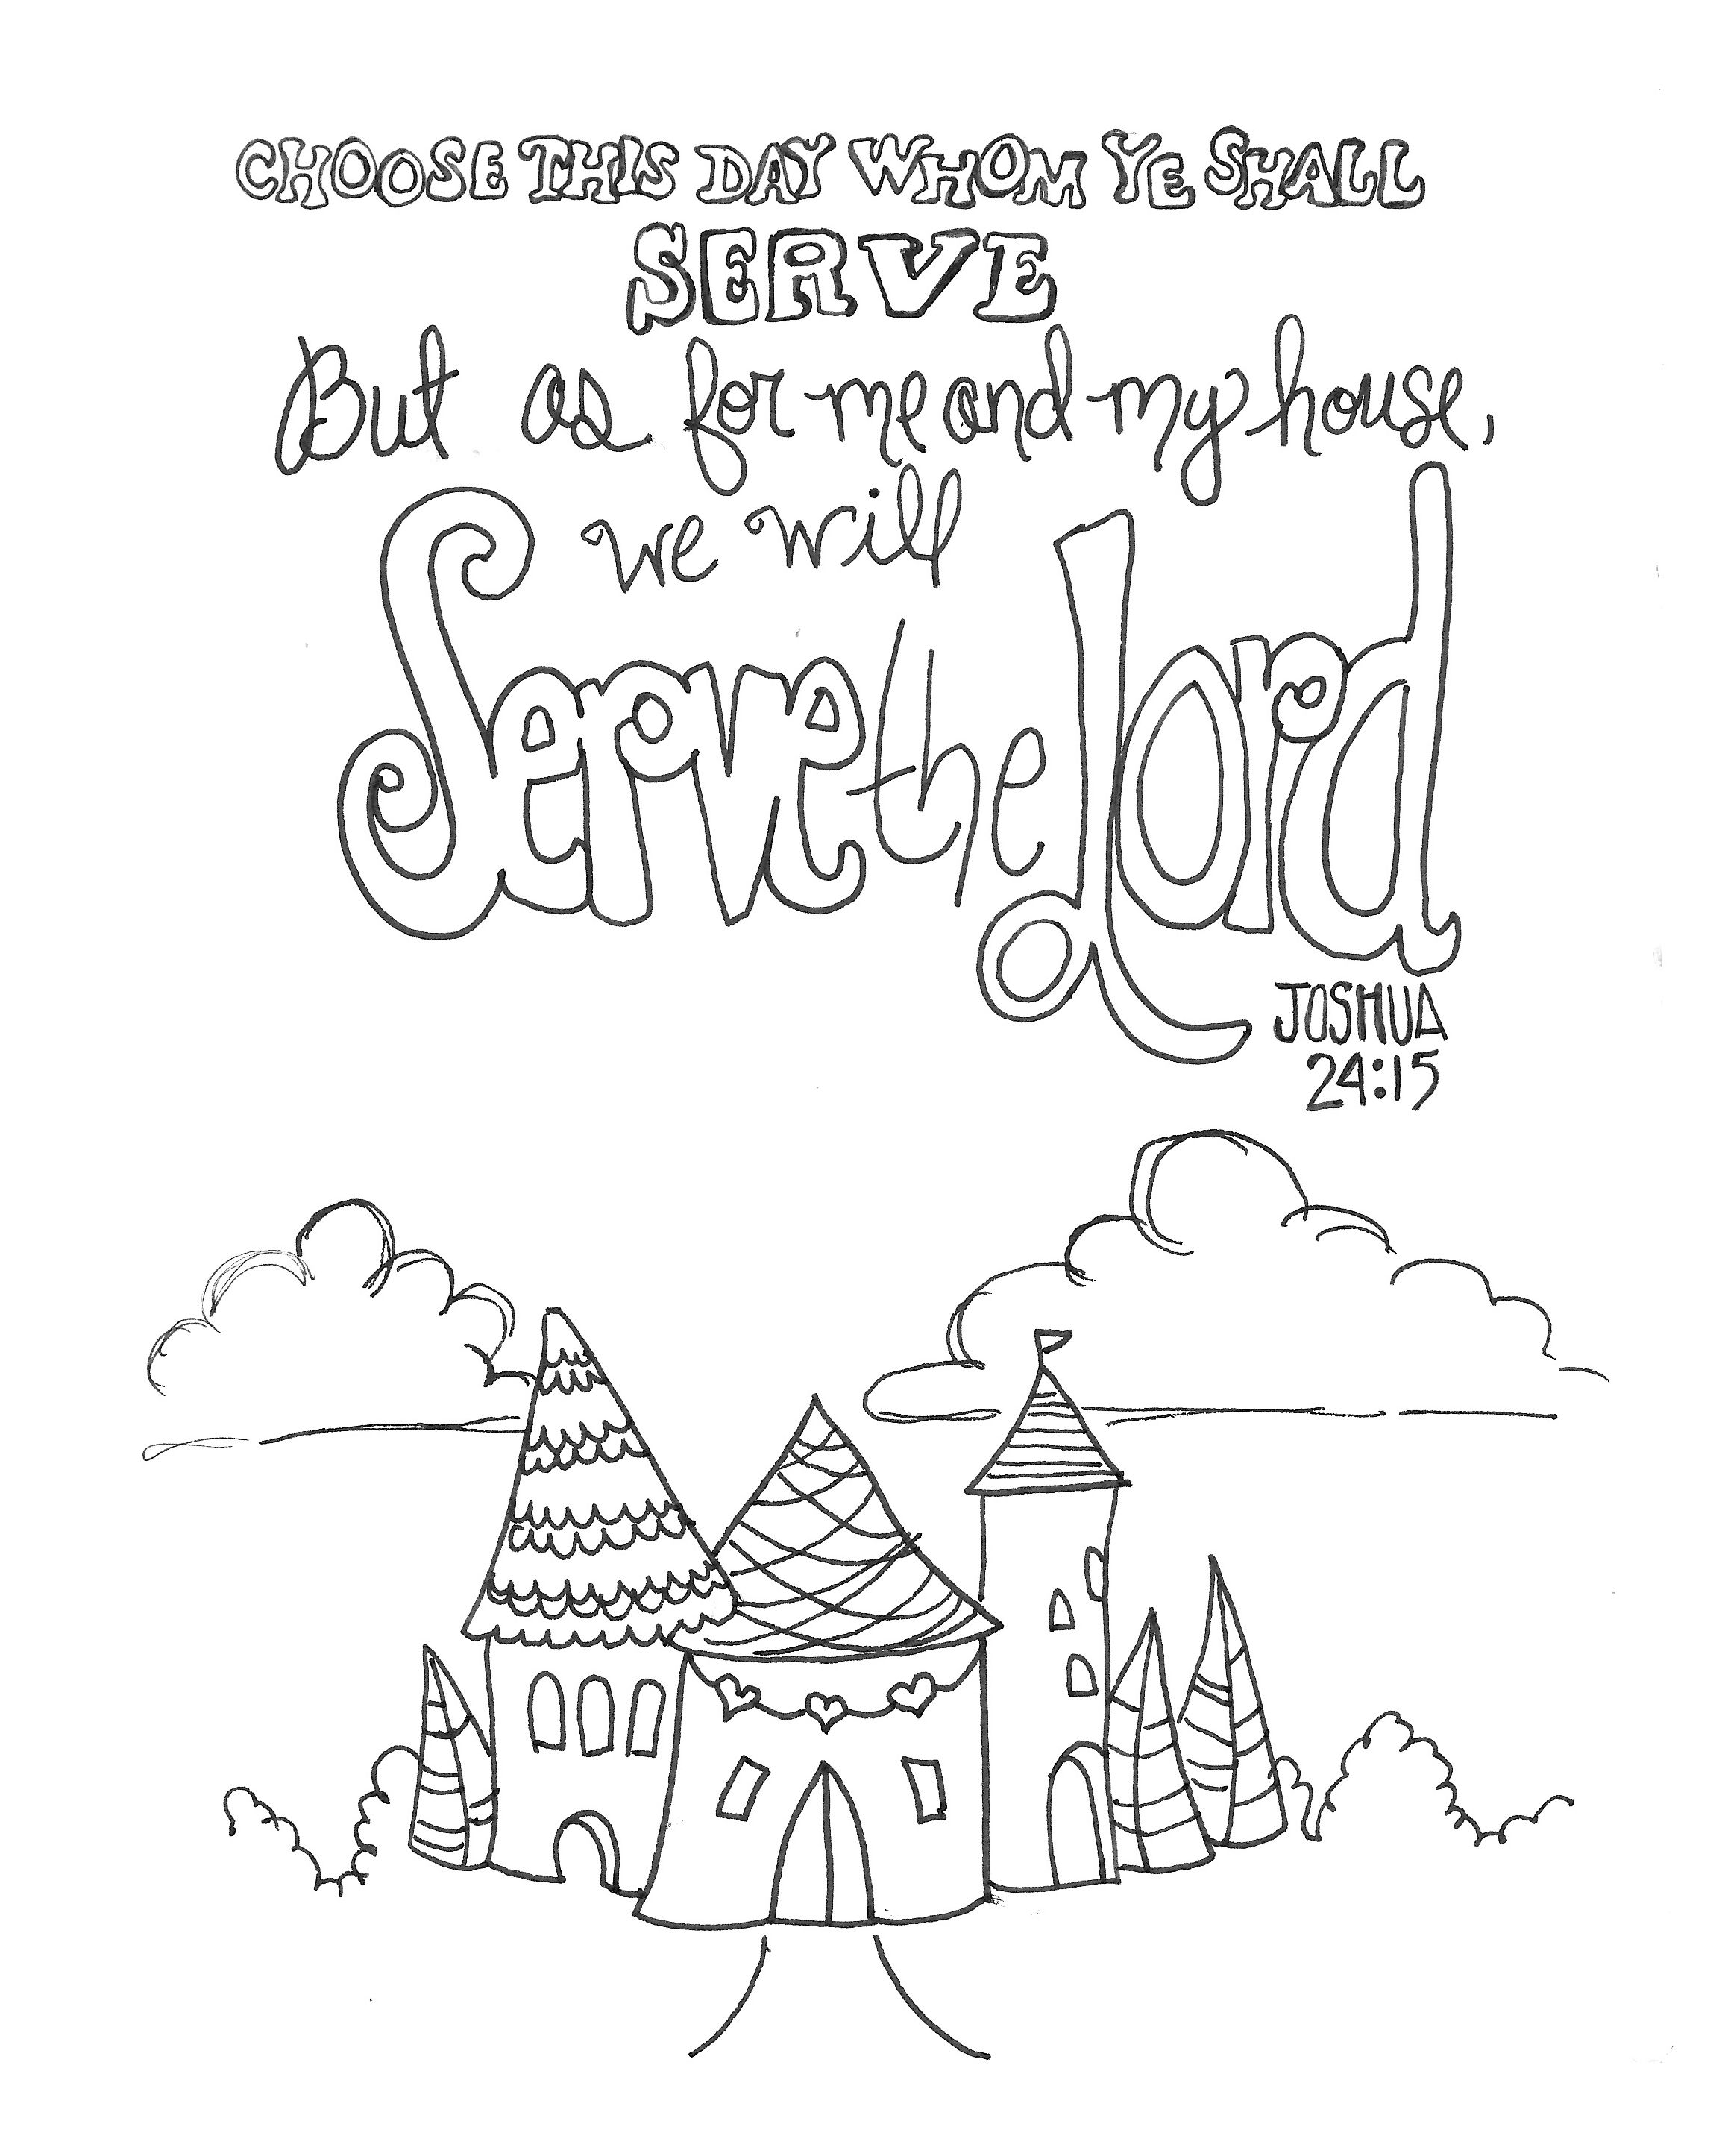 Free Coloring Printable Page 8x10 Zenspirations Download Color As You Read And Reflect On The Childrens Bible Study Bible Study For Kids Bible Verse Coloring